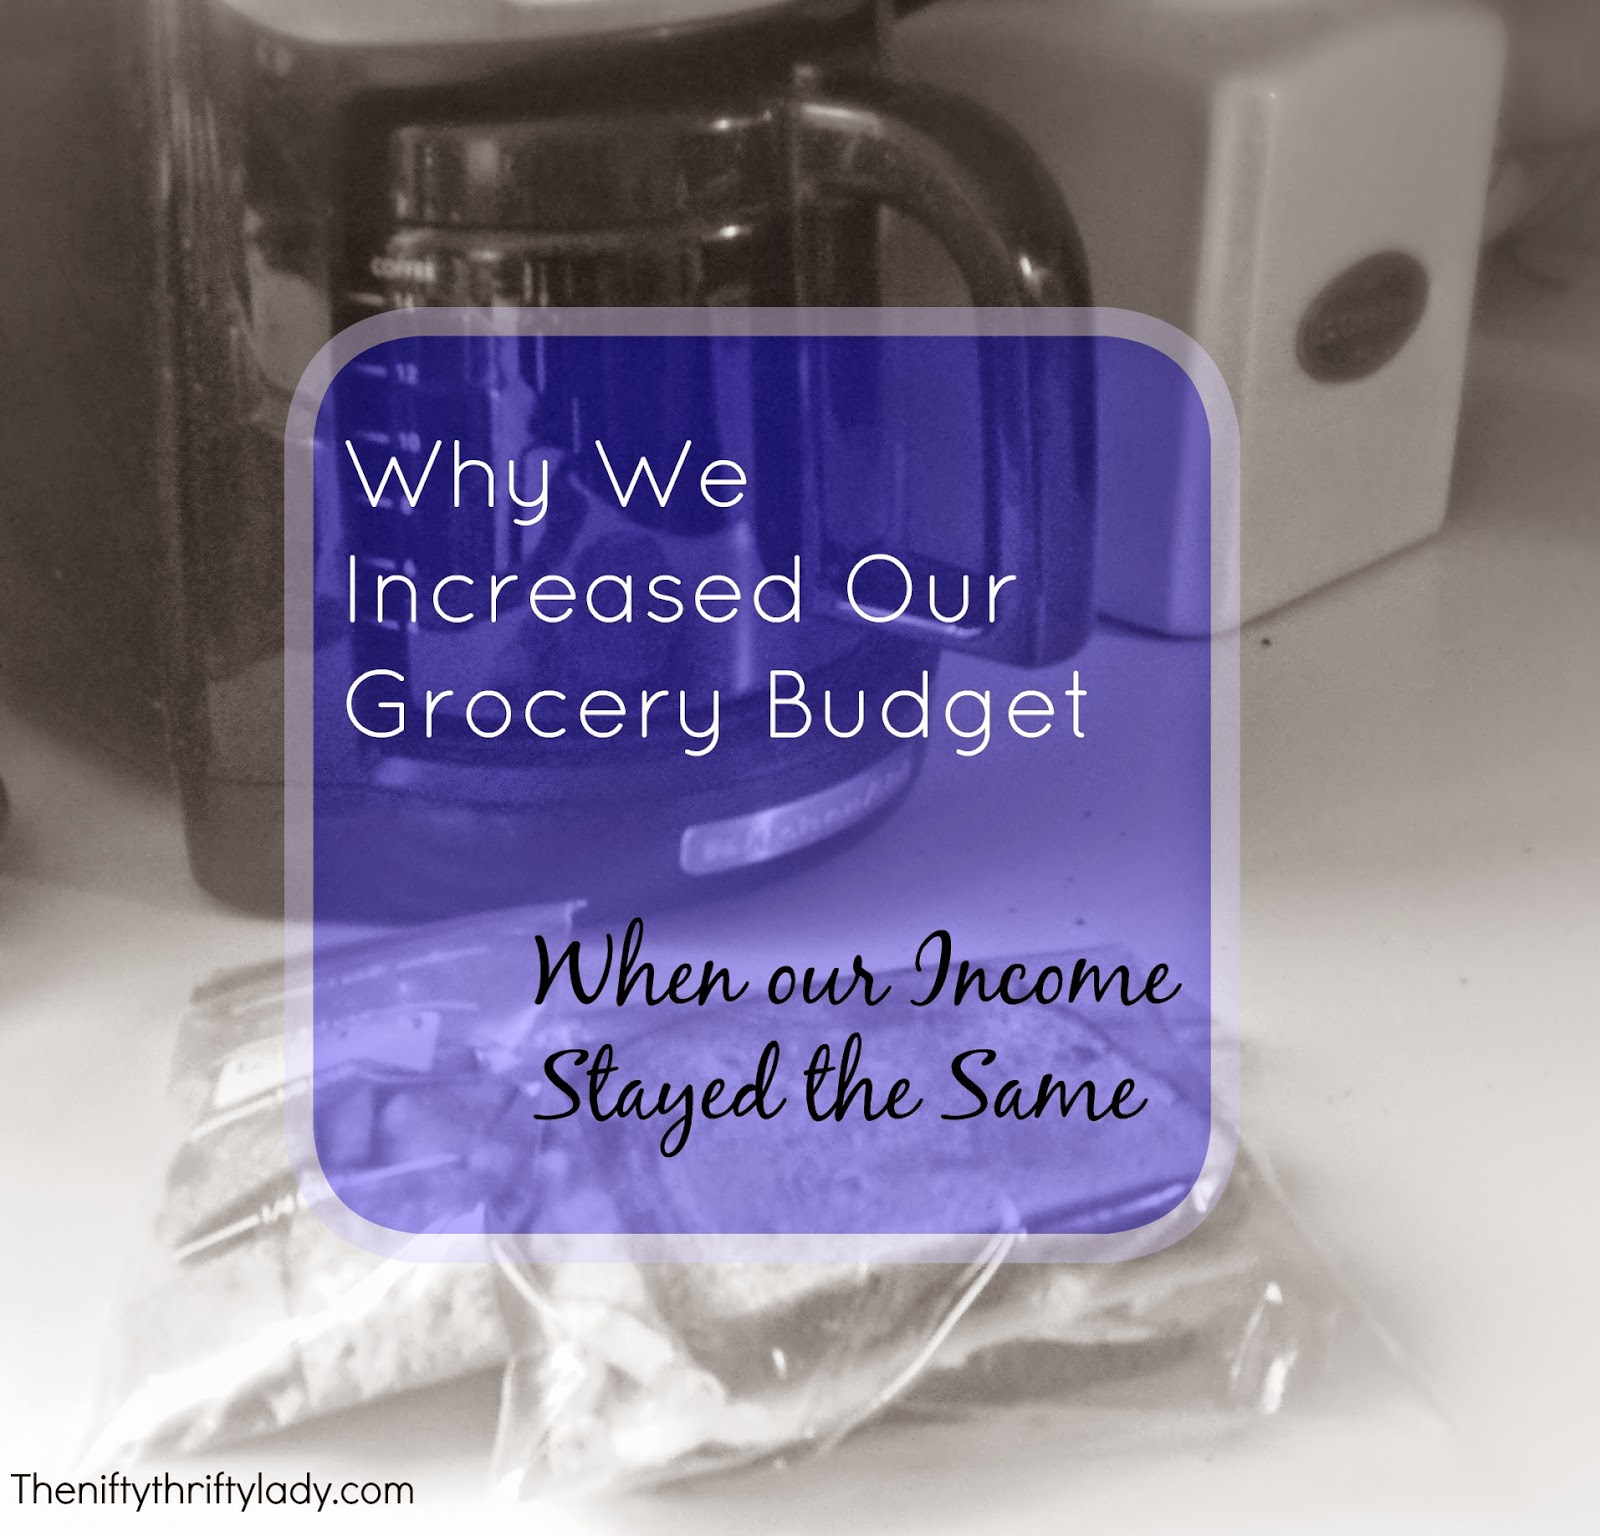 Increase your grocery budget on the same income